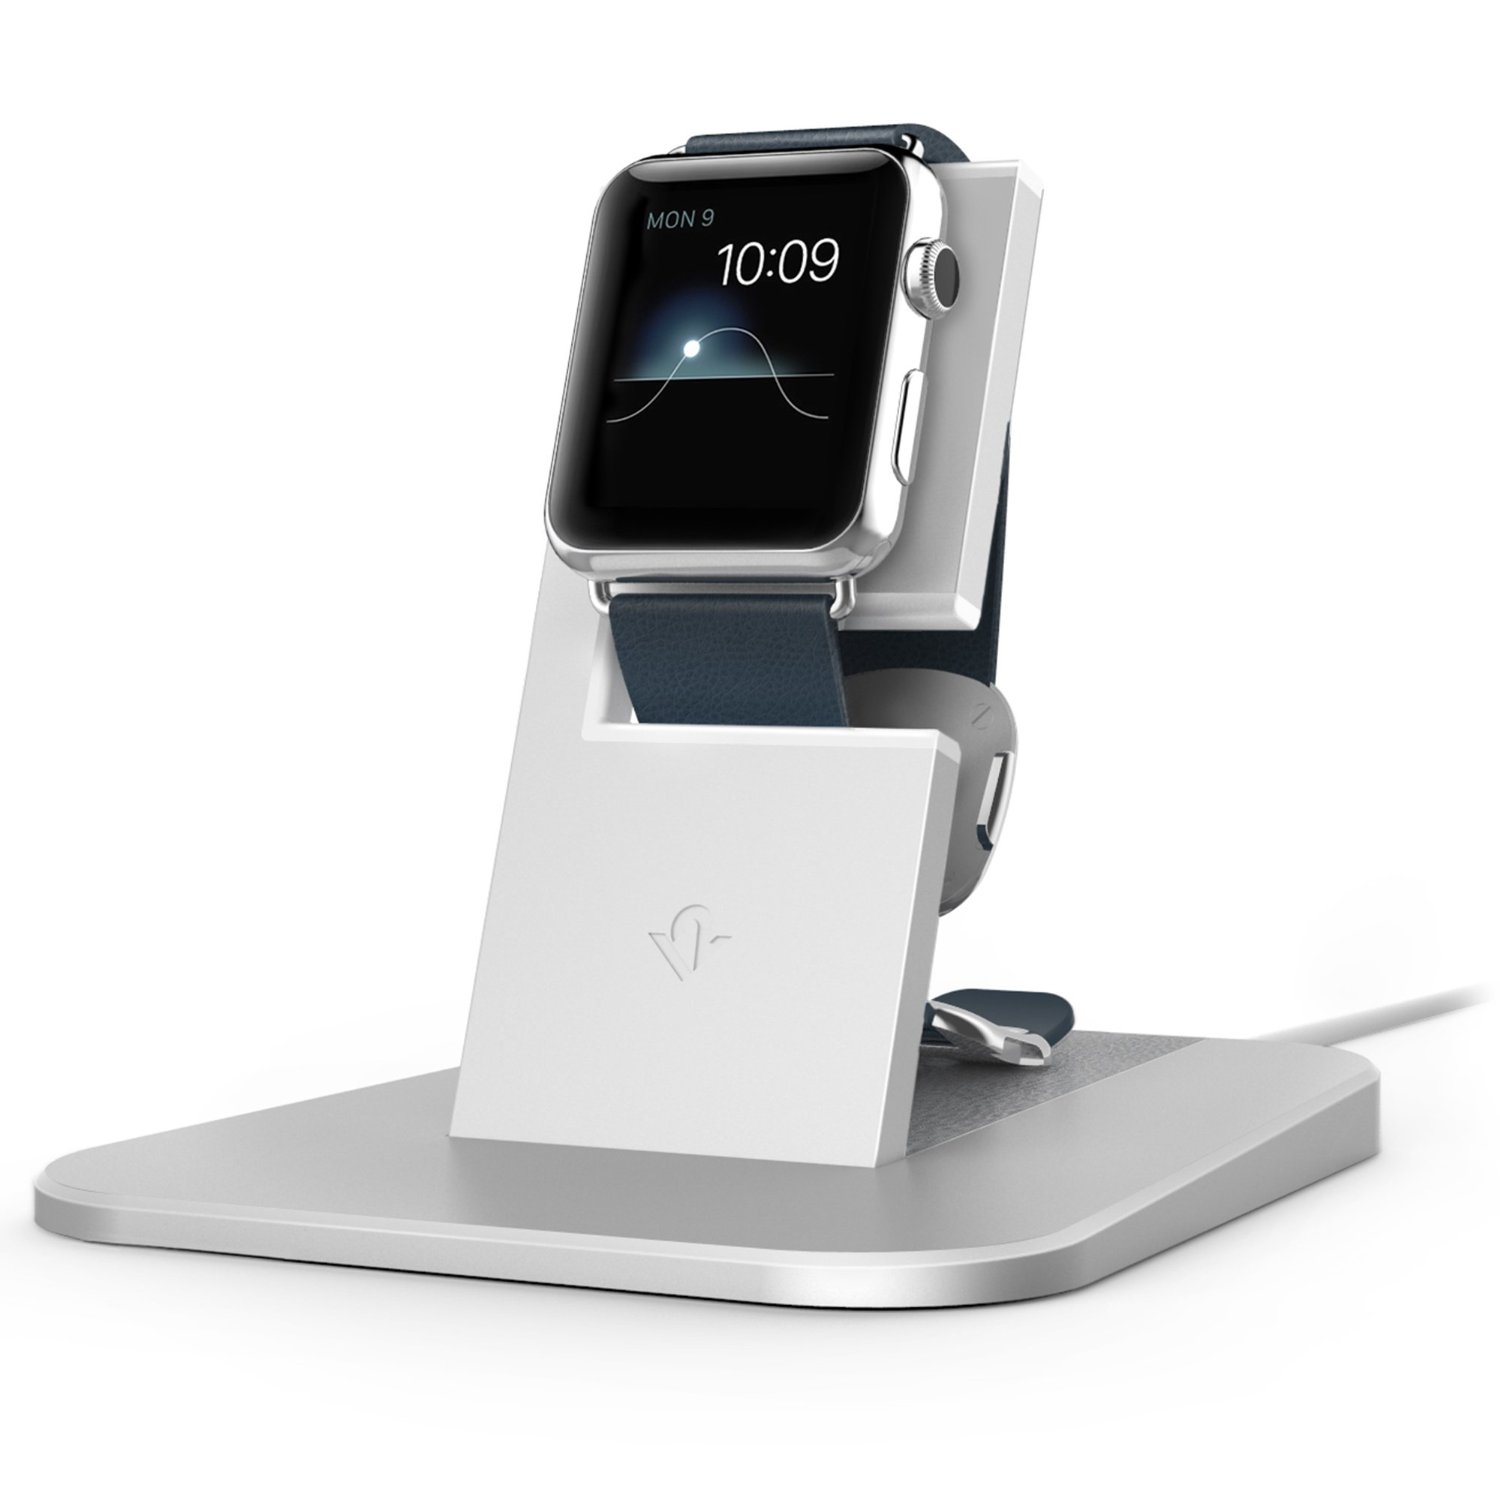 apple watch stand, apple watch dock, apple watch accessories